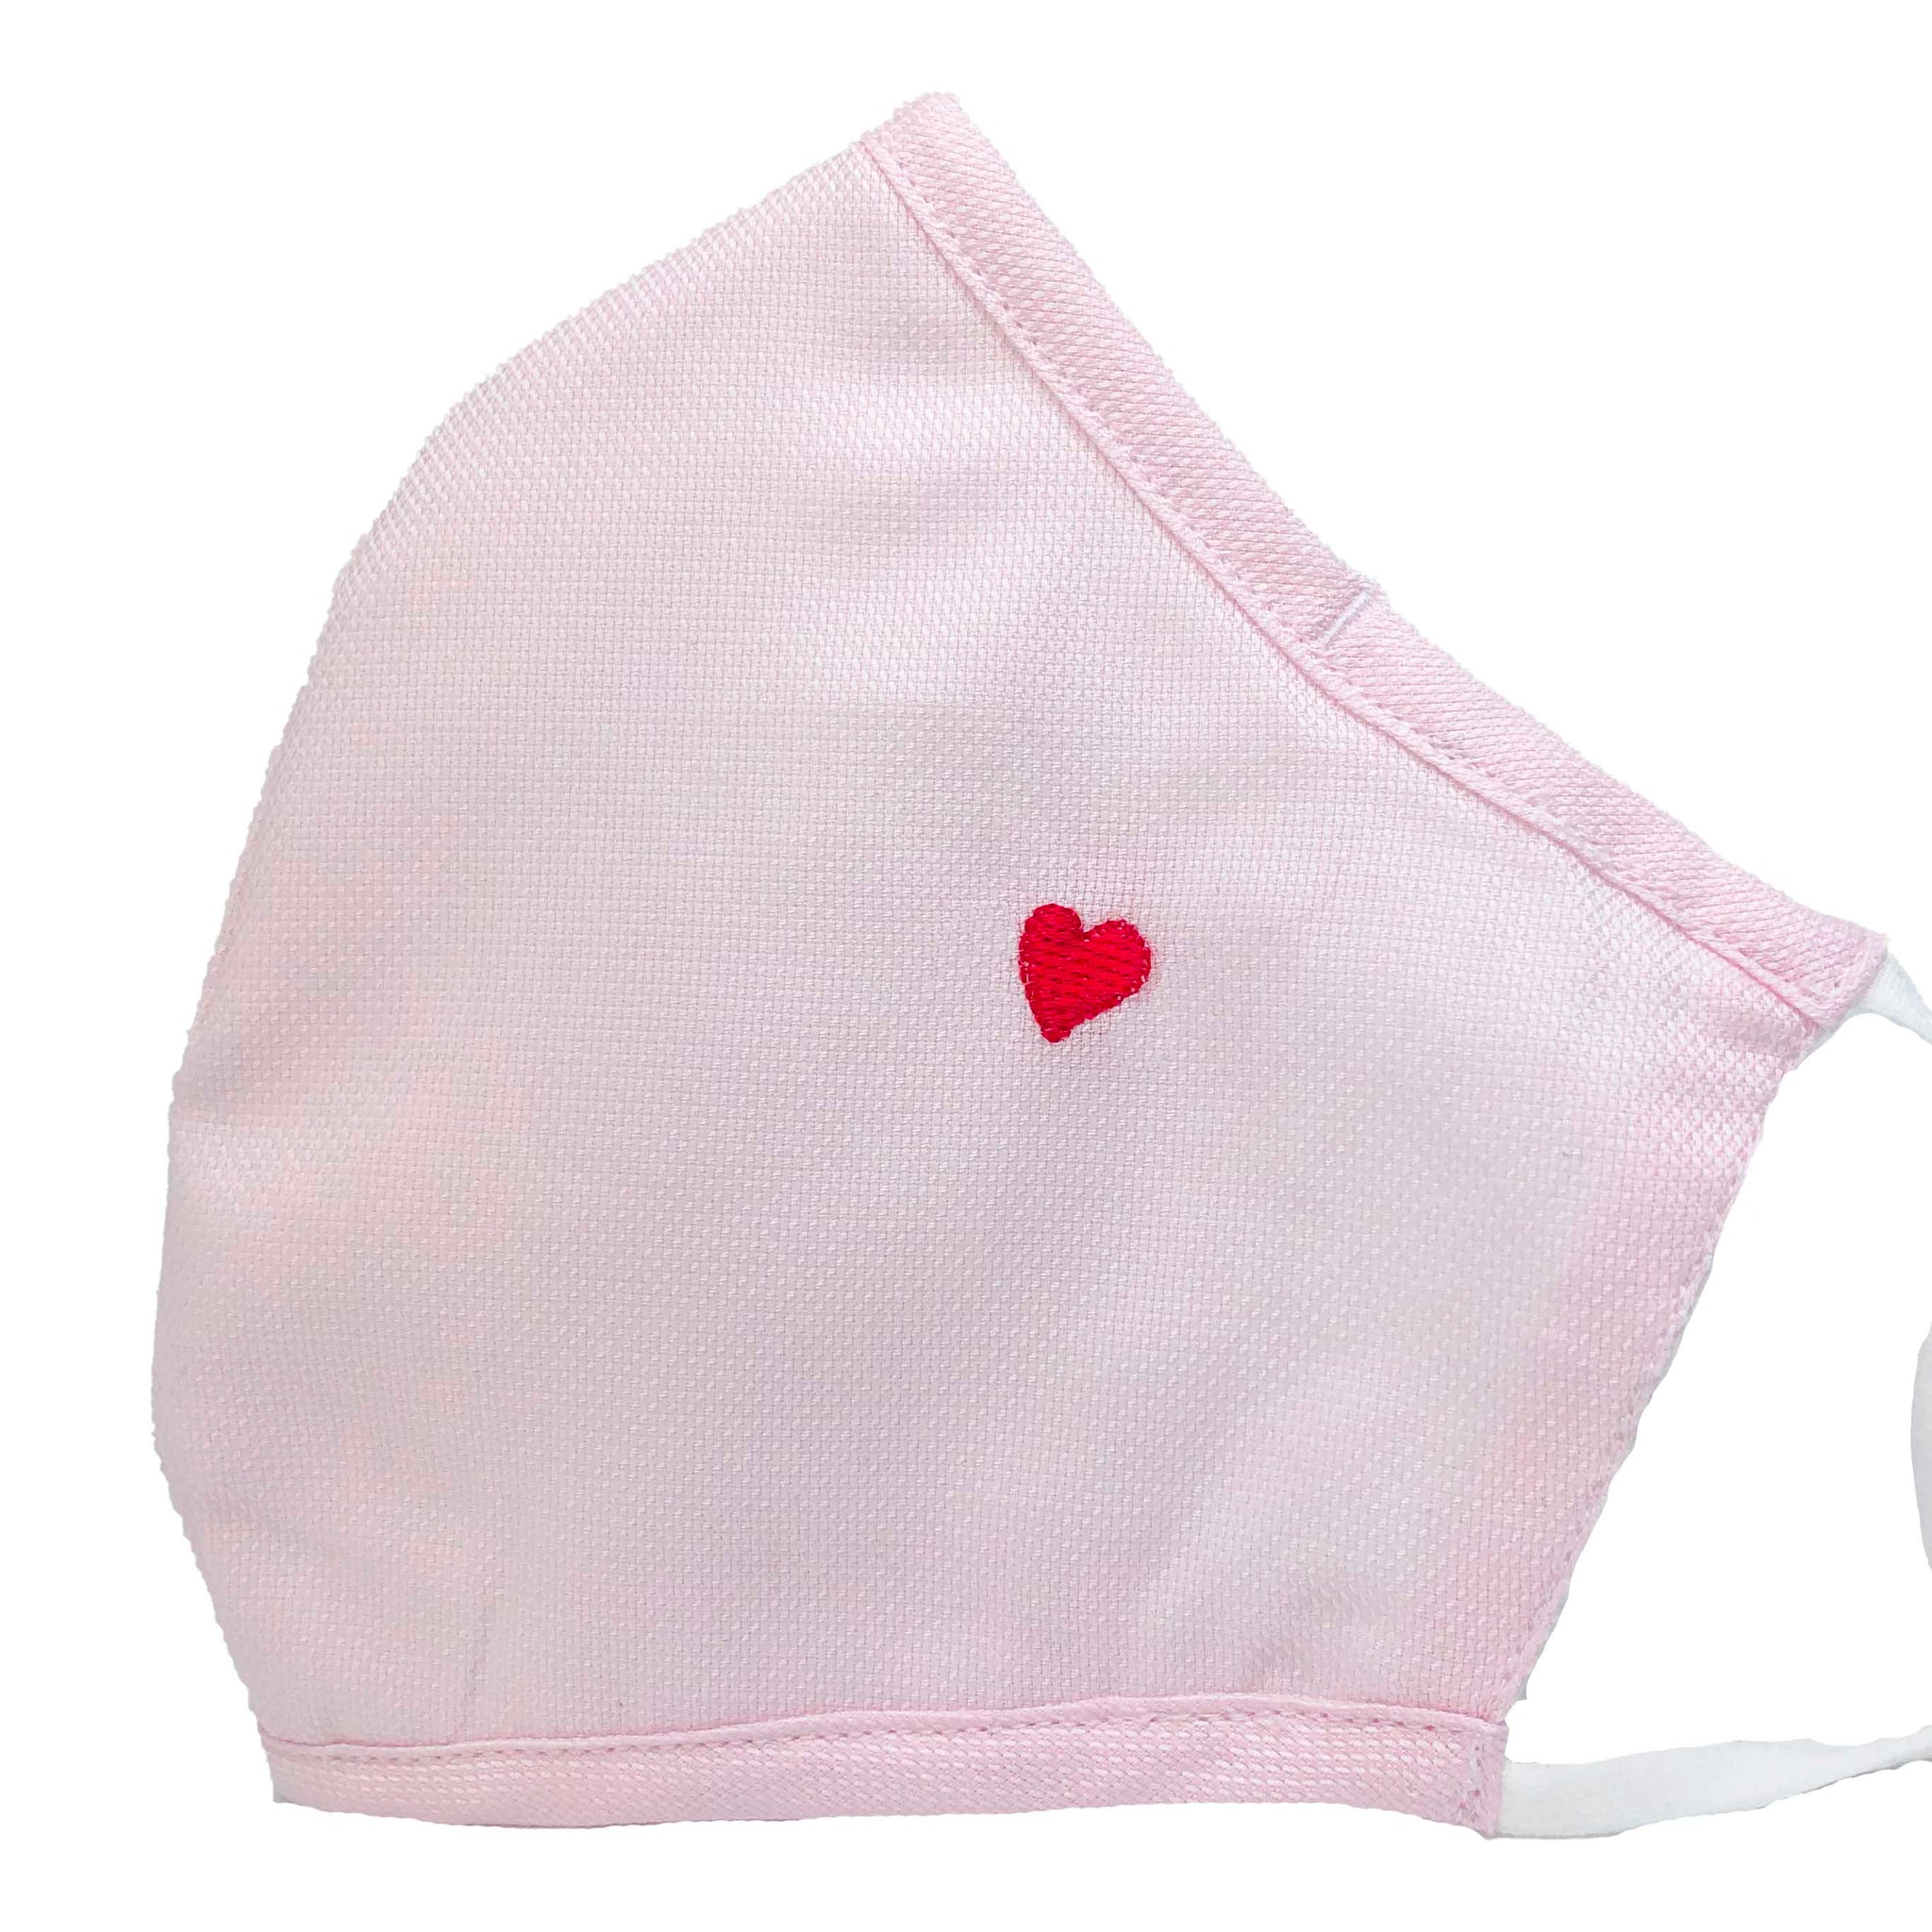 100% Cotton Triple Layer Adjustable Mask with Built-In Nose Wire & Filter Pocket -  Little Heart (Baby Pink)